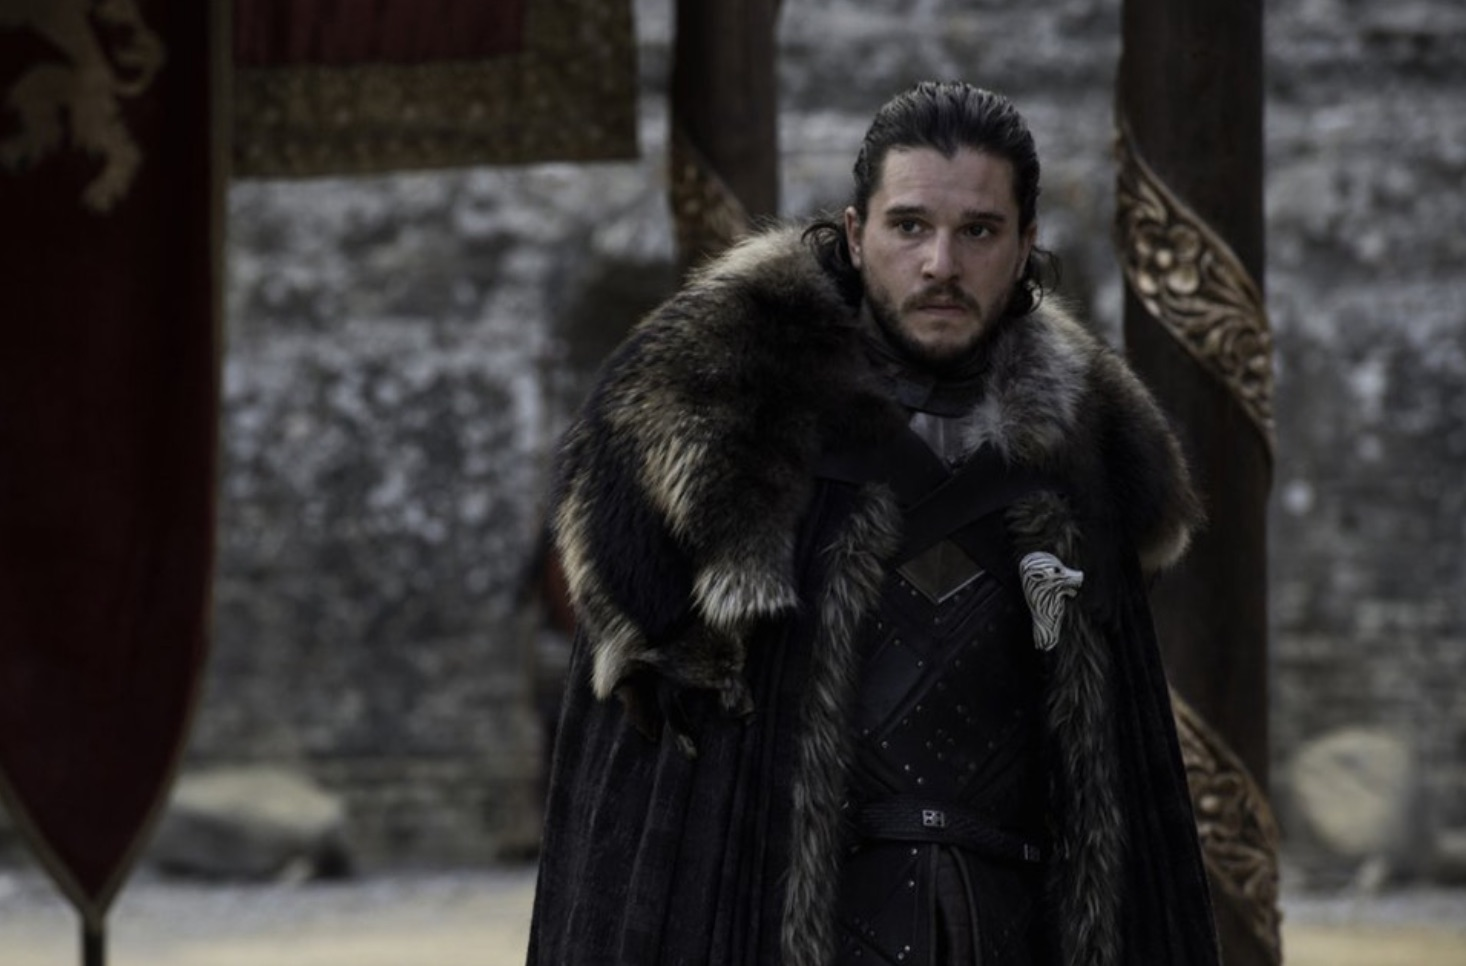 'Game of Thrones' season finale makes good on all its foreshadowing